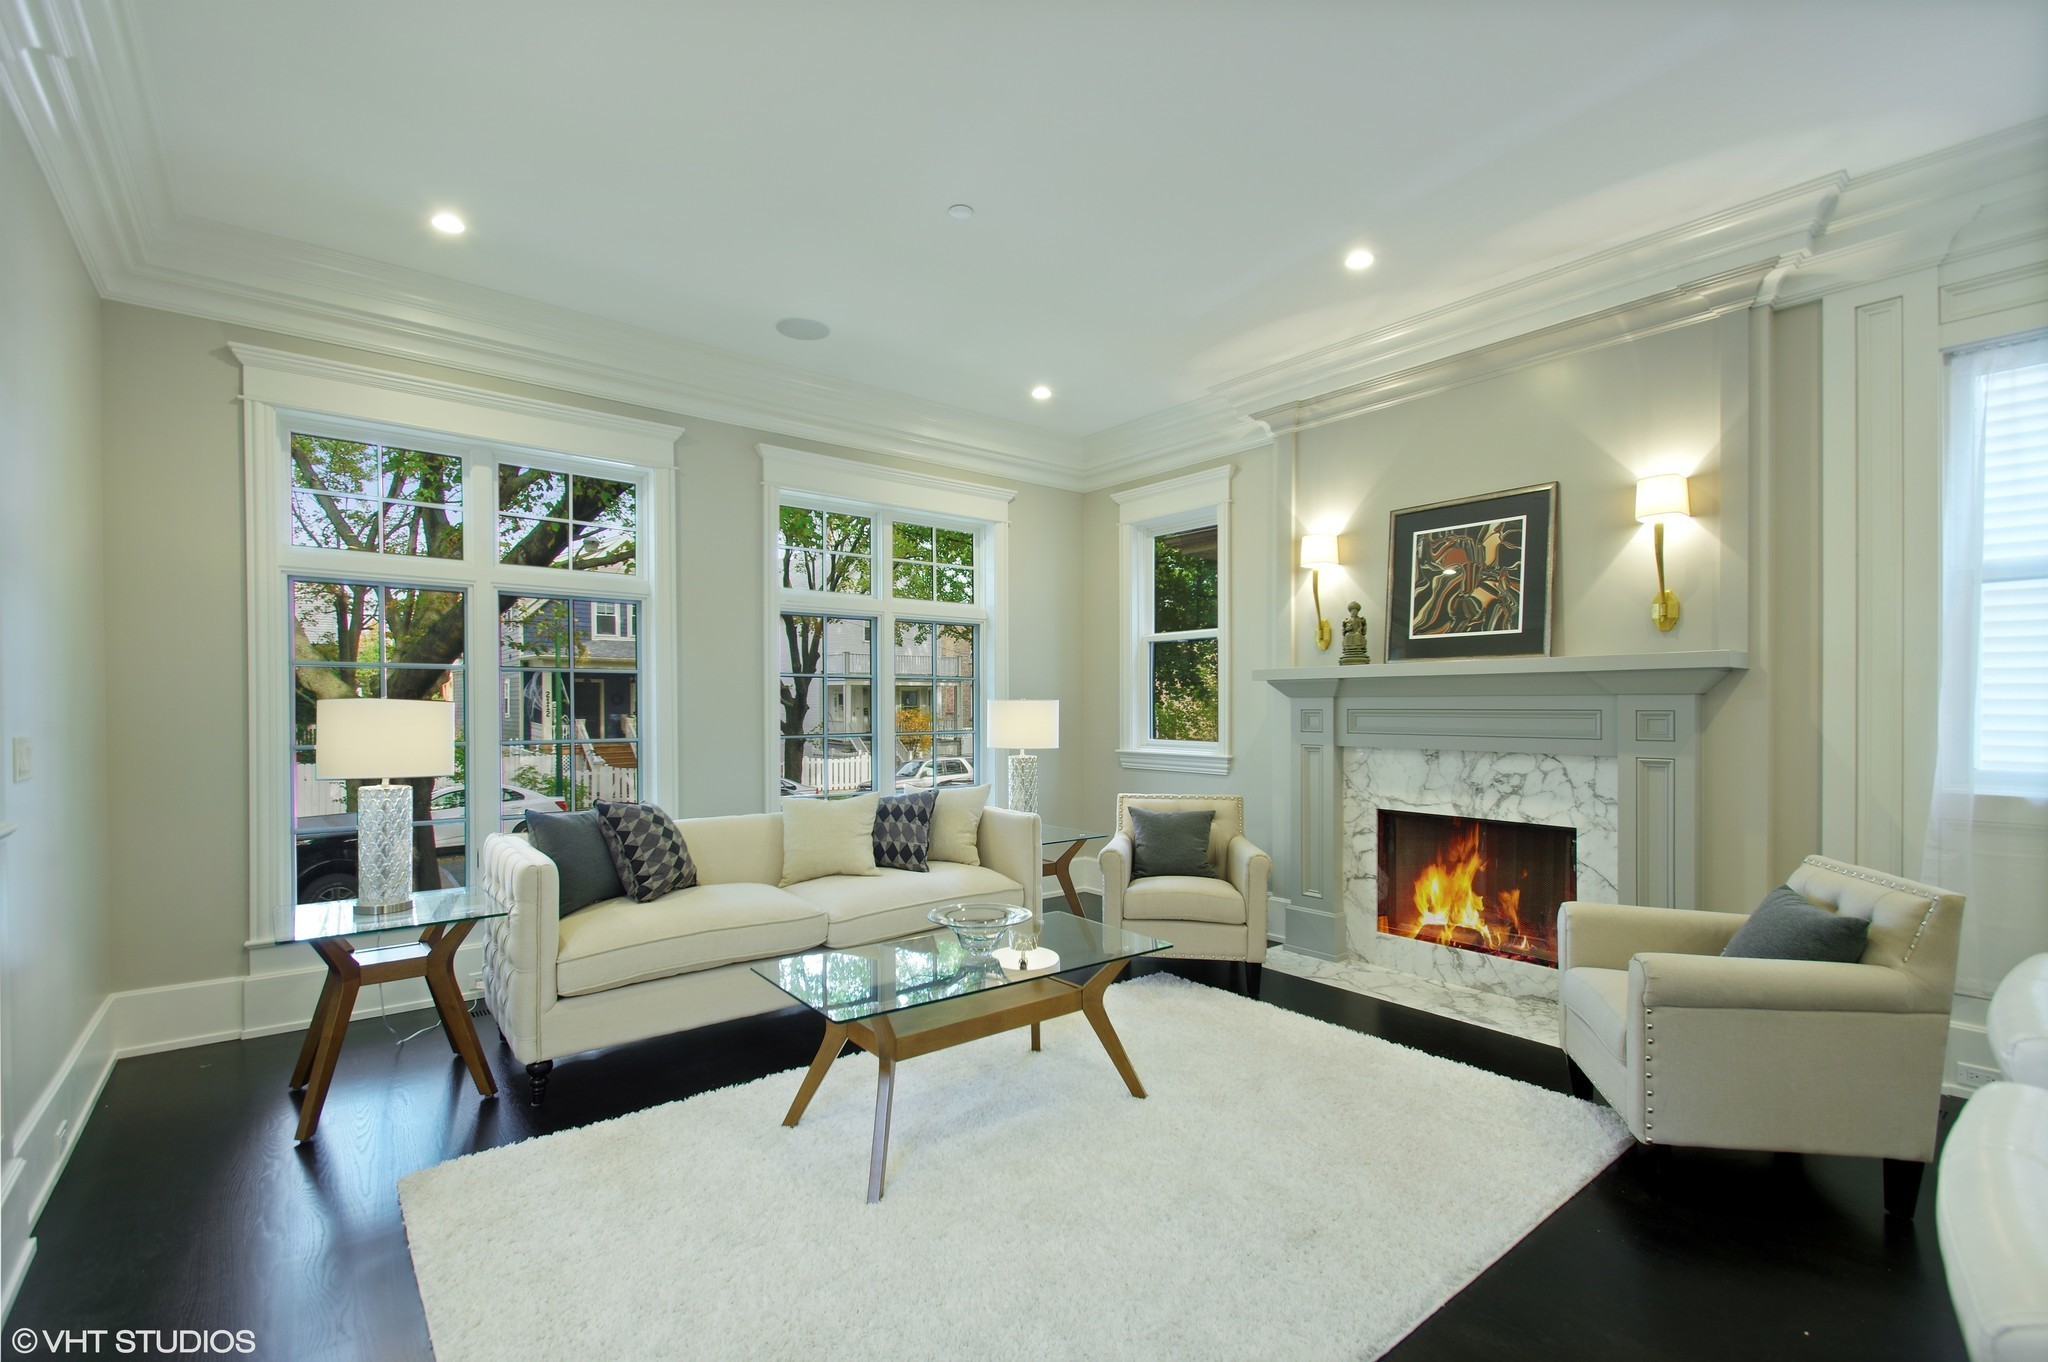 Lincoln Square home with Au Pair suite: $2.1M - Chicago Tribune